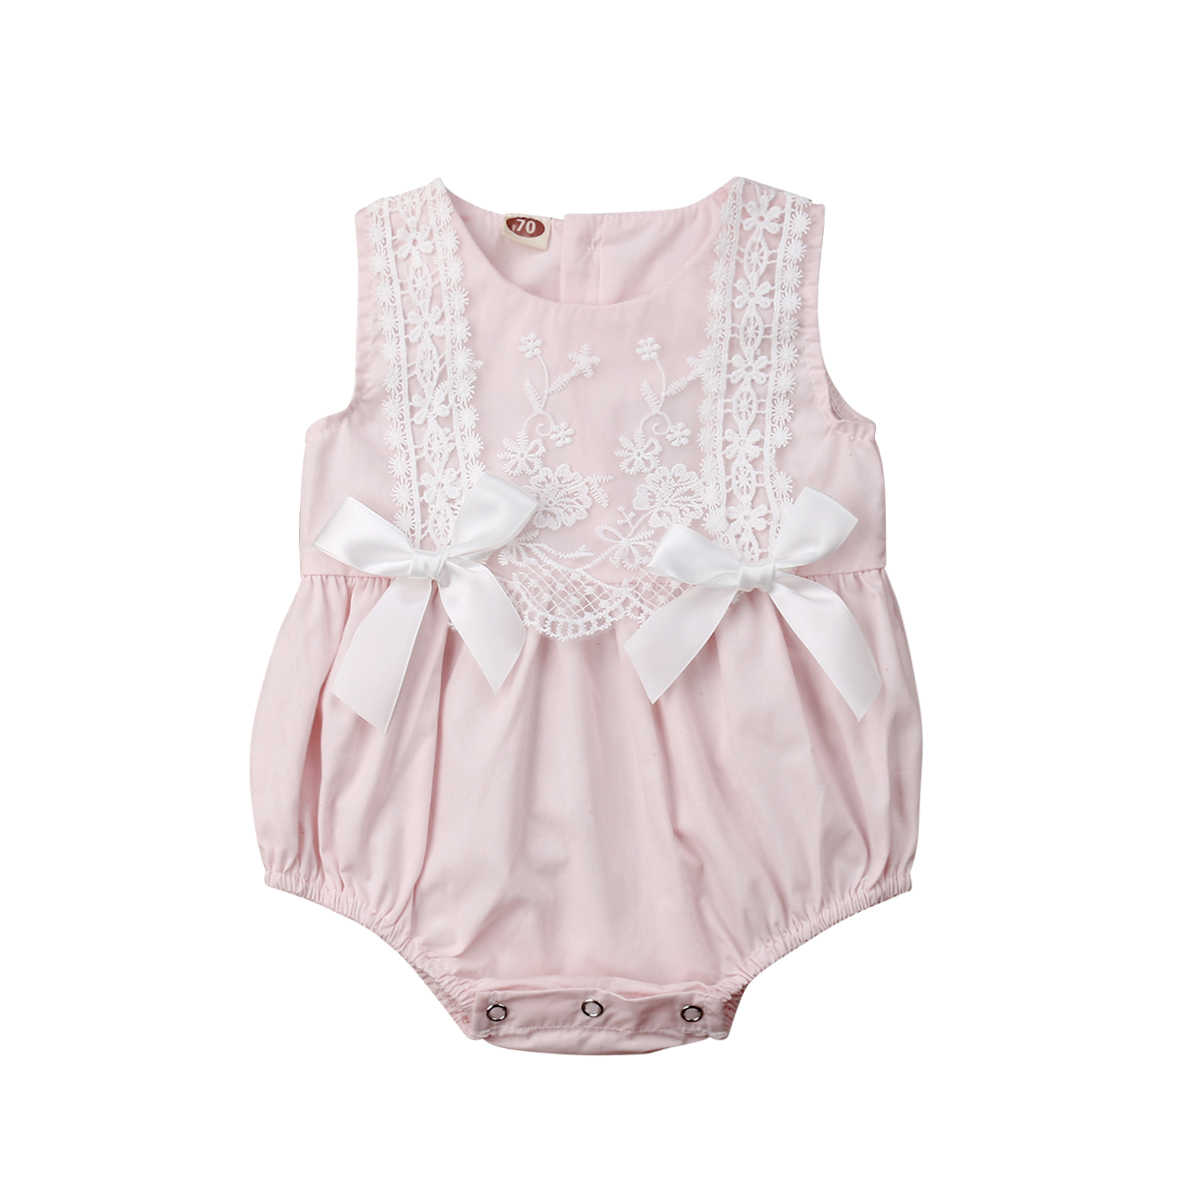 a2ed11377200 2019 New Infant Newborn Baby Girls Clothing Lace Ruffles Rompers Jumpsuit  Cute Bow Sunsuit Summer Baby